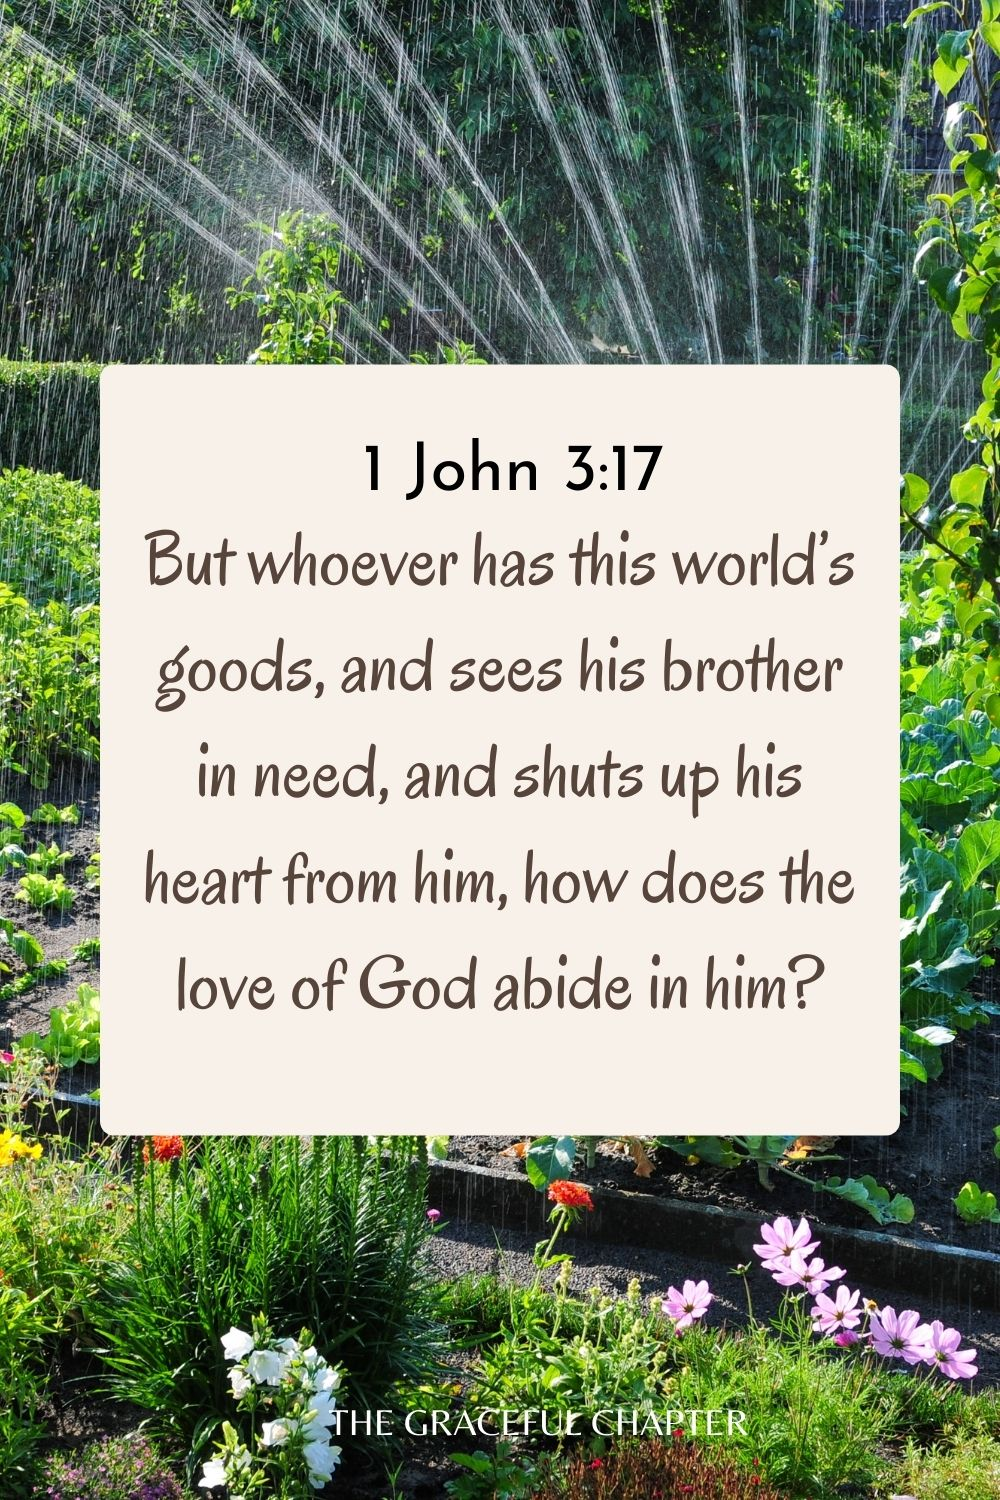 But whoever has this world's goods, and sees his brother in need, and shuts up his heart from him, how does the love of God abide in him? 1 John 3:17